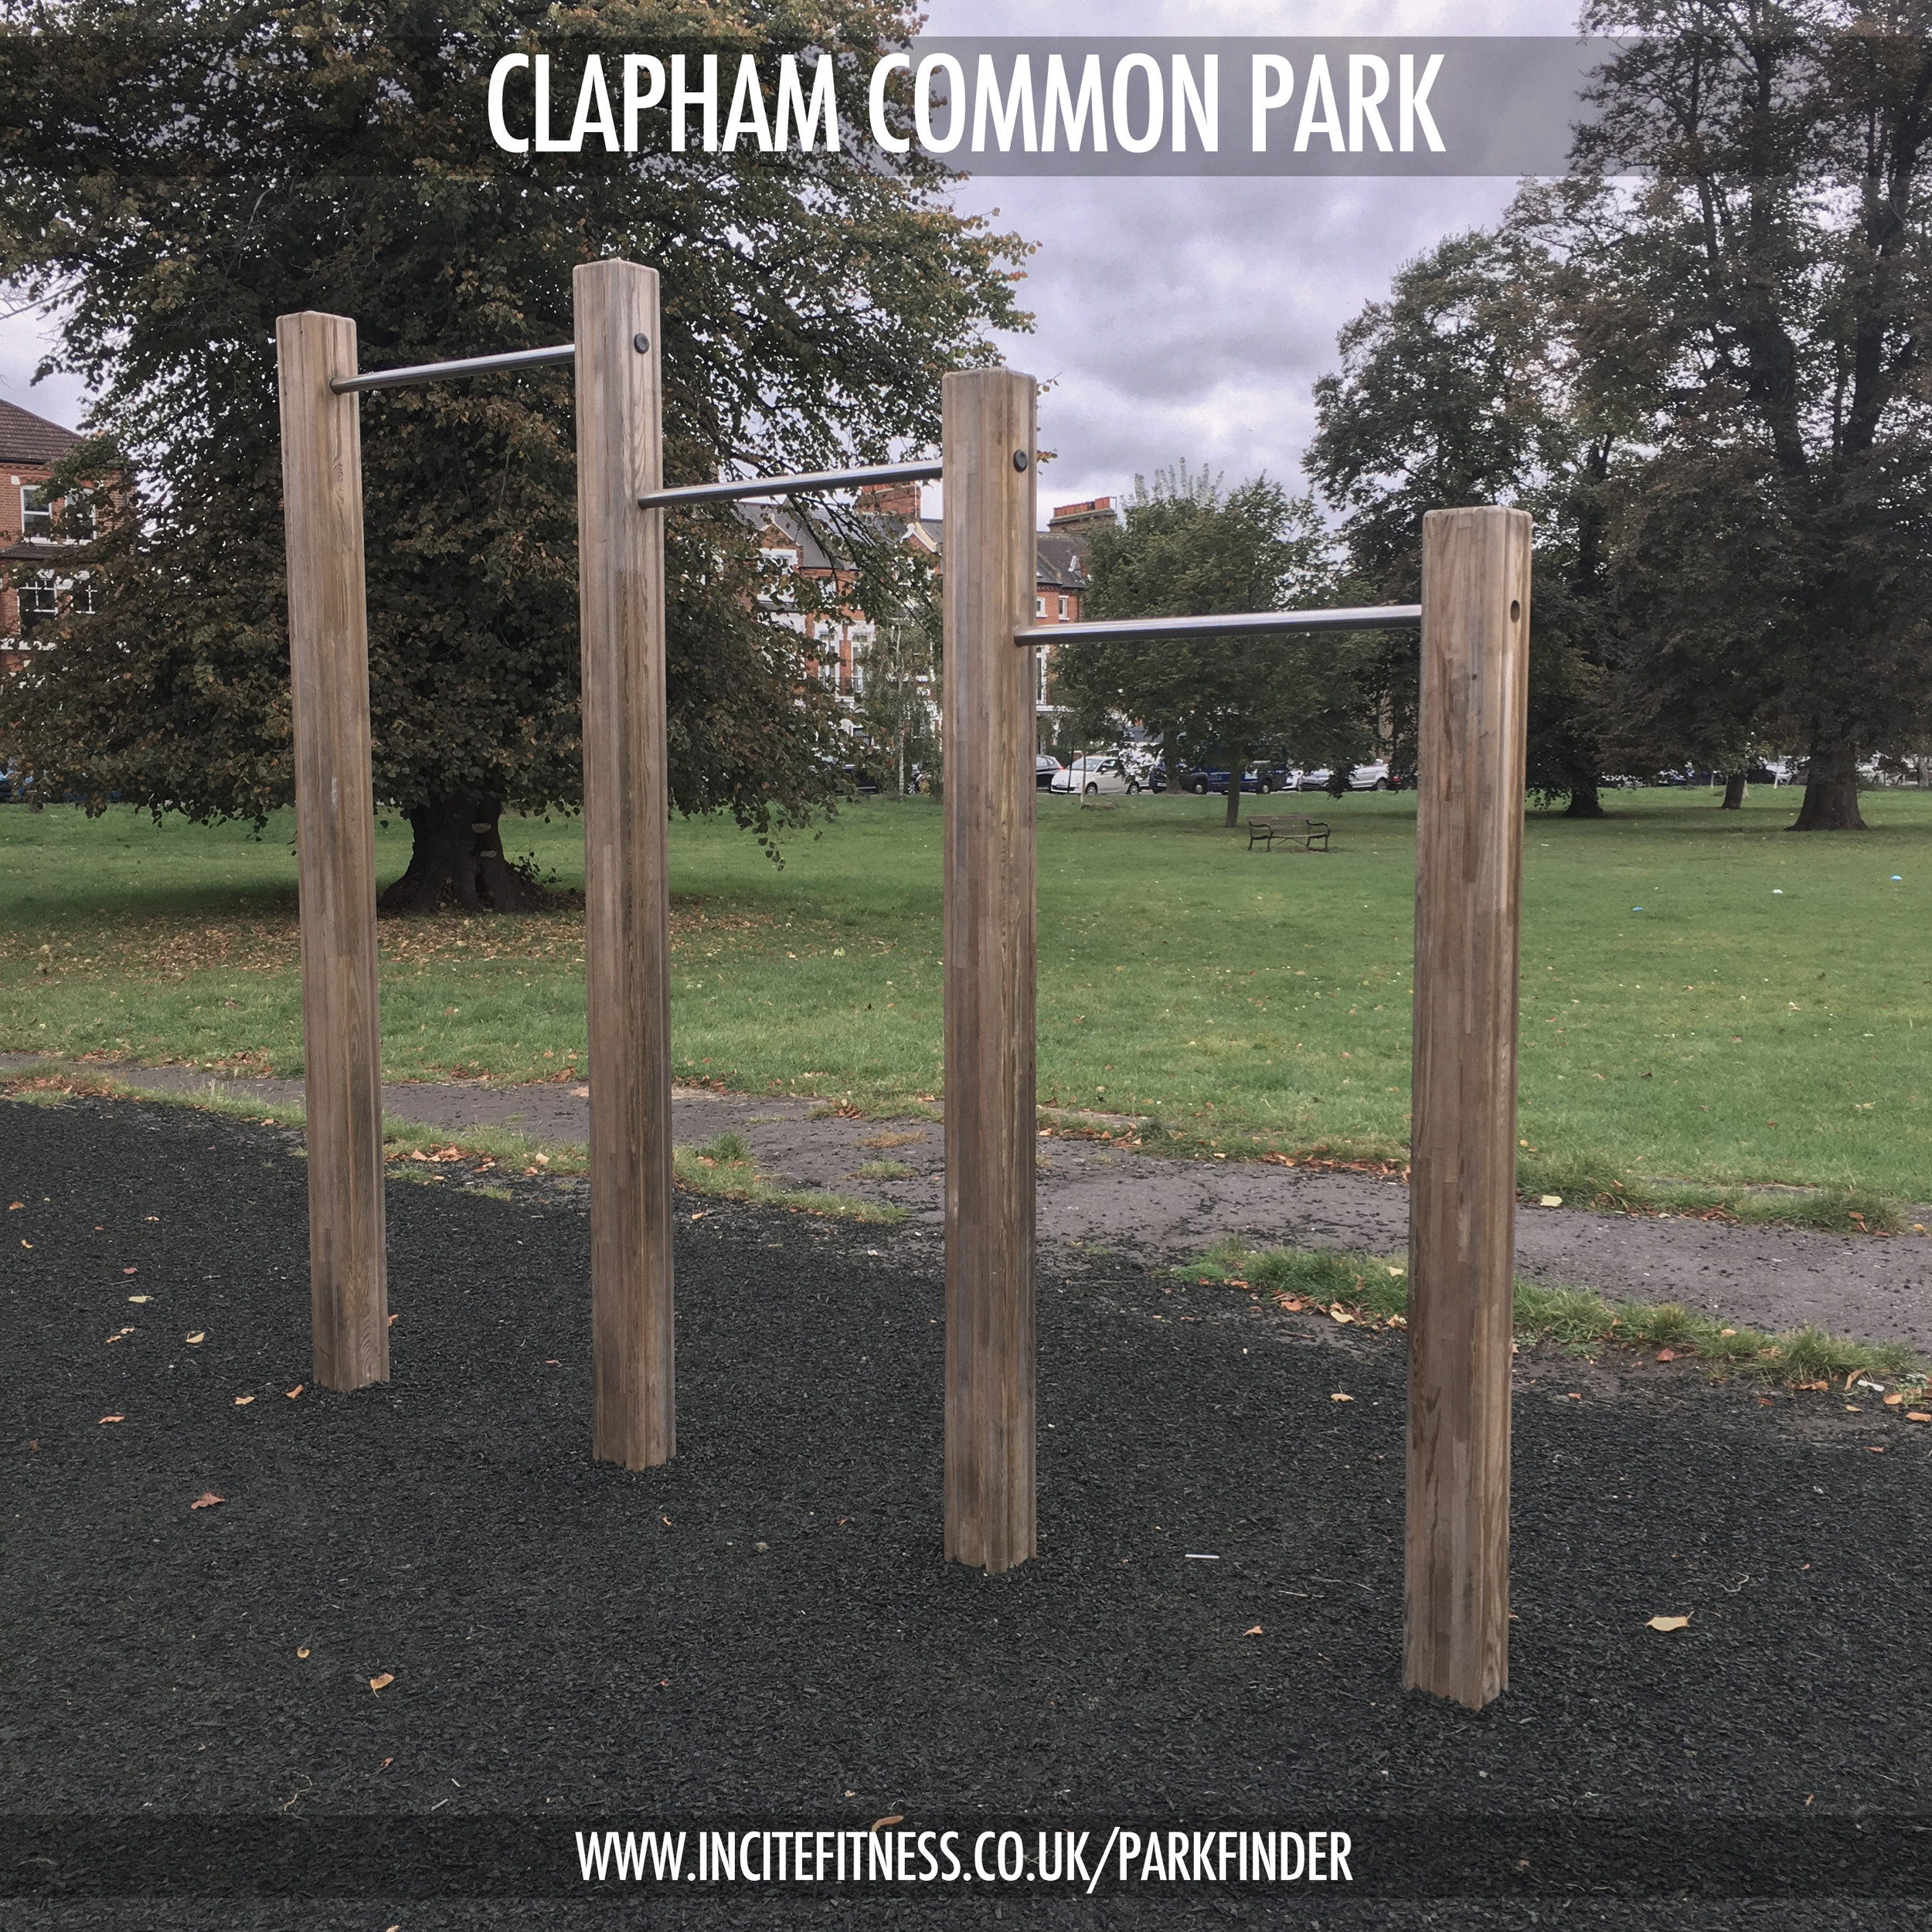 Clapham Common 01 pull up bar.jpg